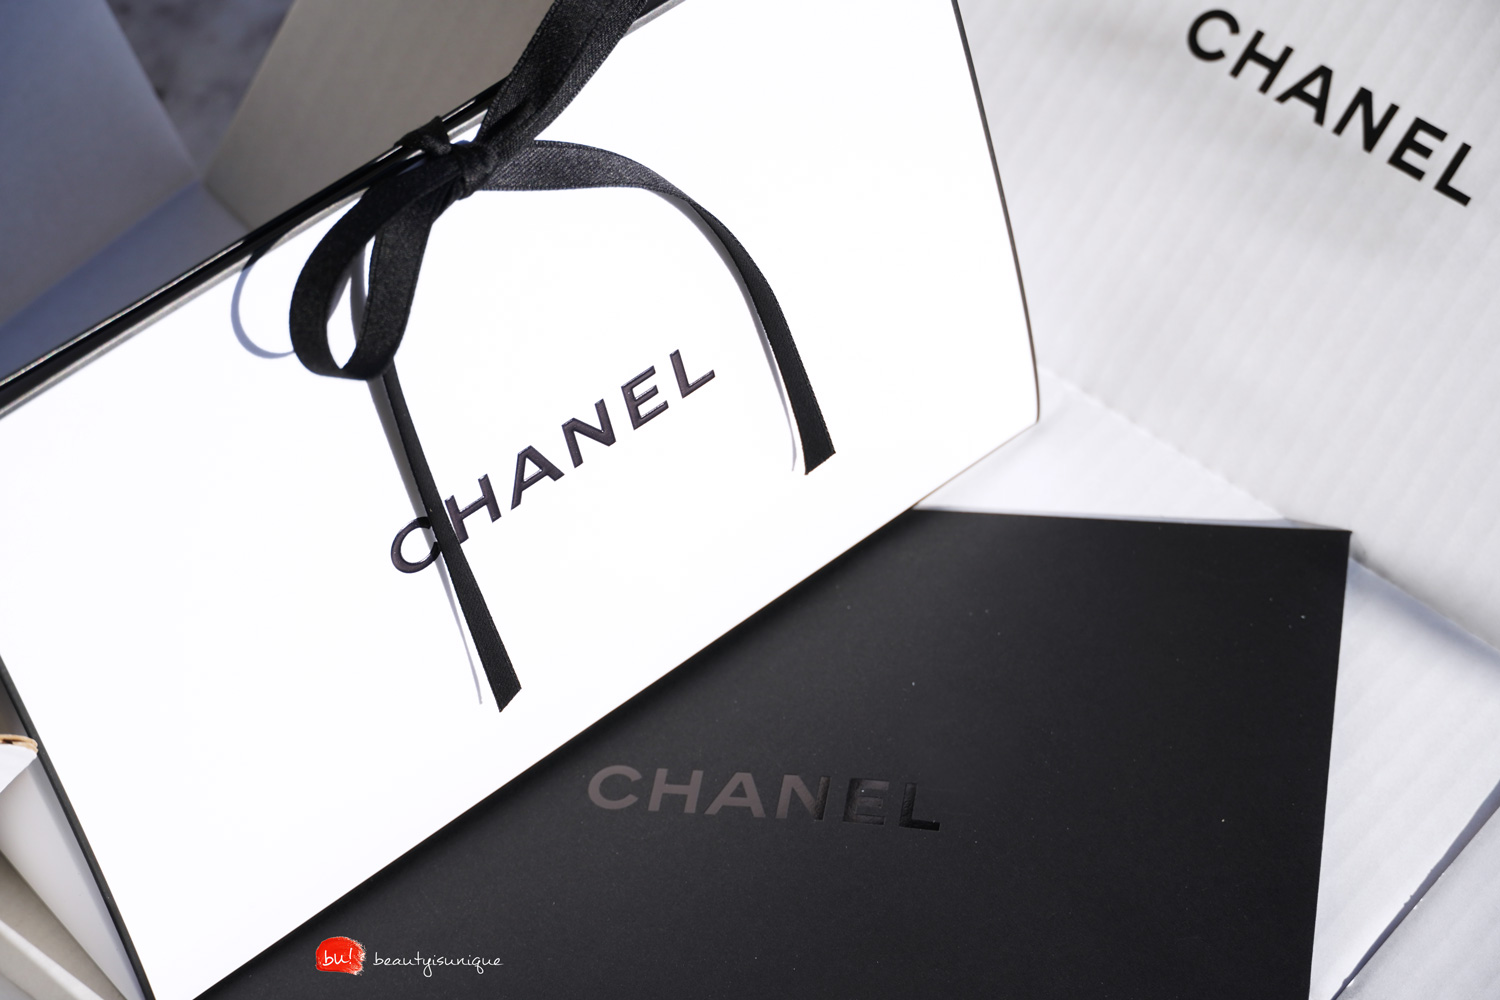 Chanel-holiday-2019-les-ornements-de-chanel